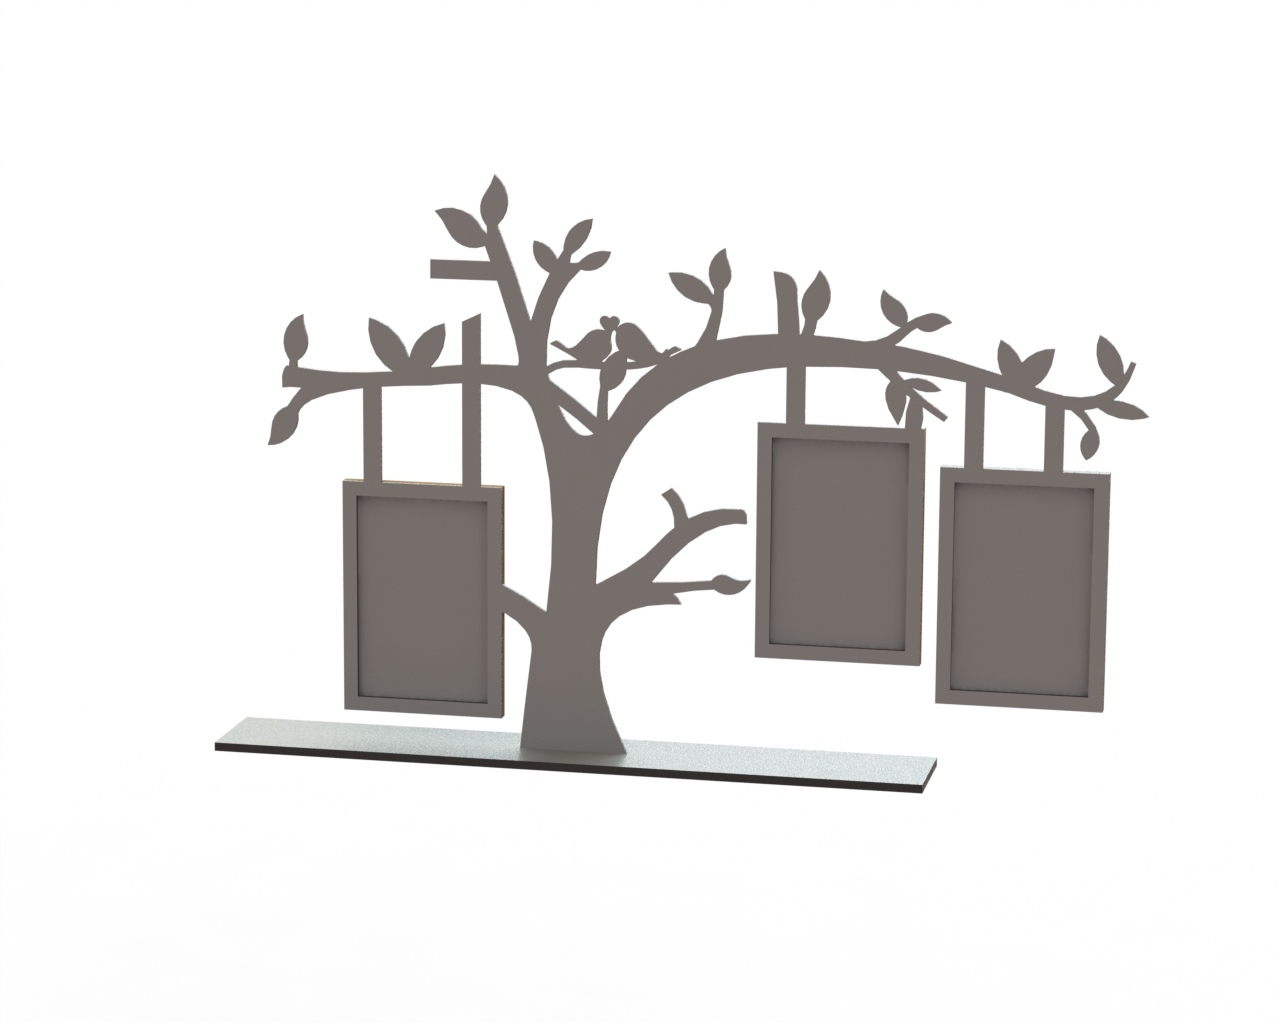 Tree Frame Laser Cut DXF File Free Download - 3axis co